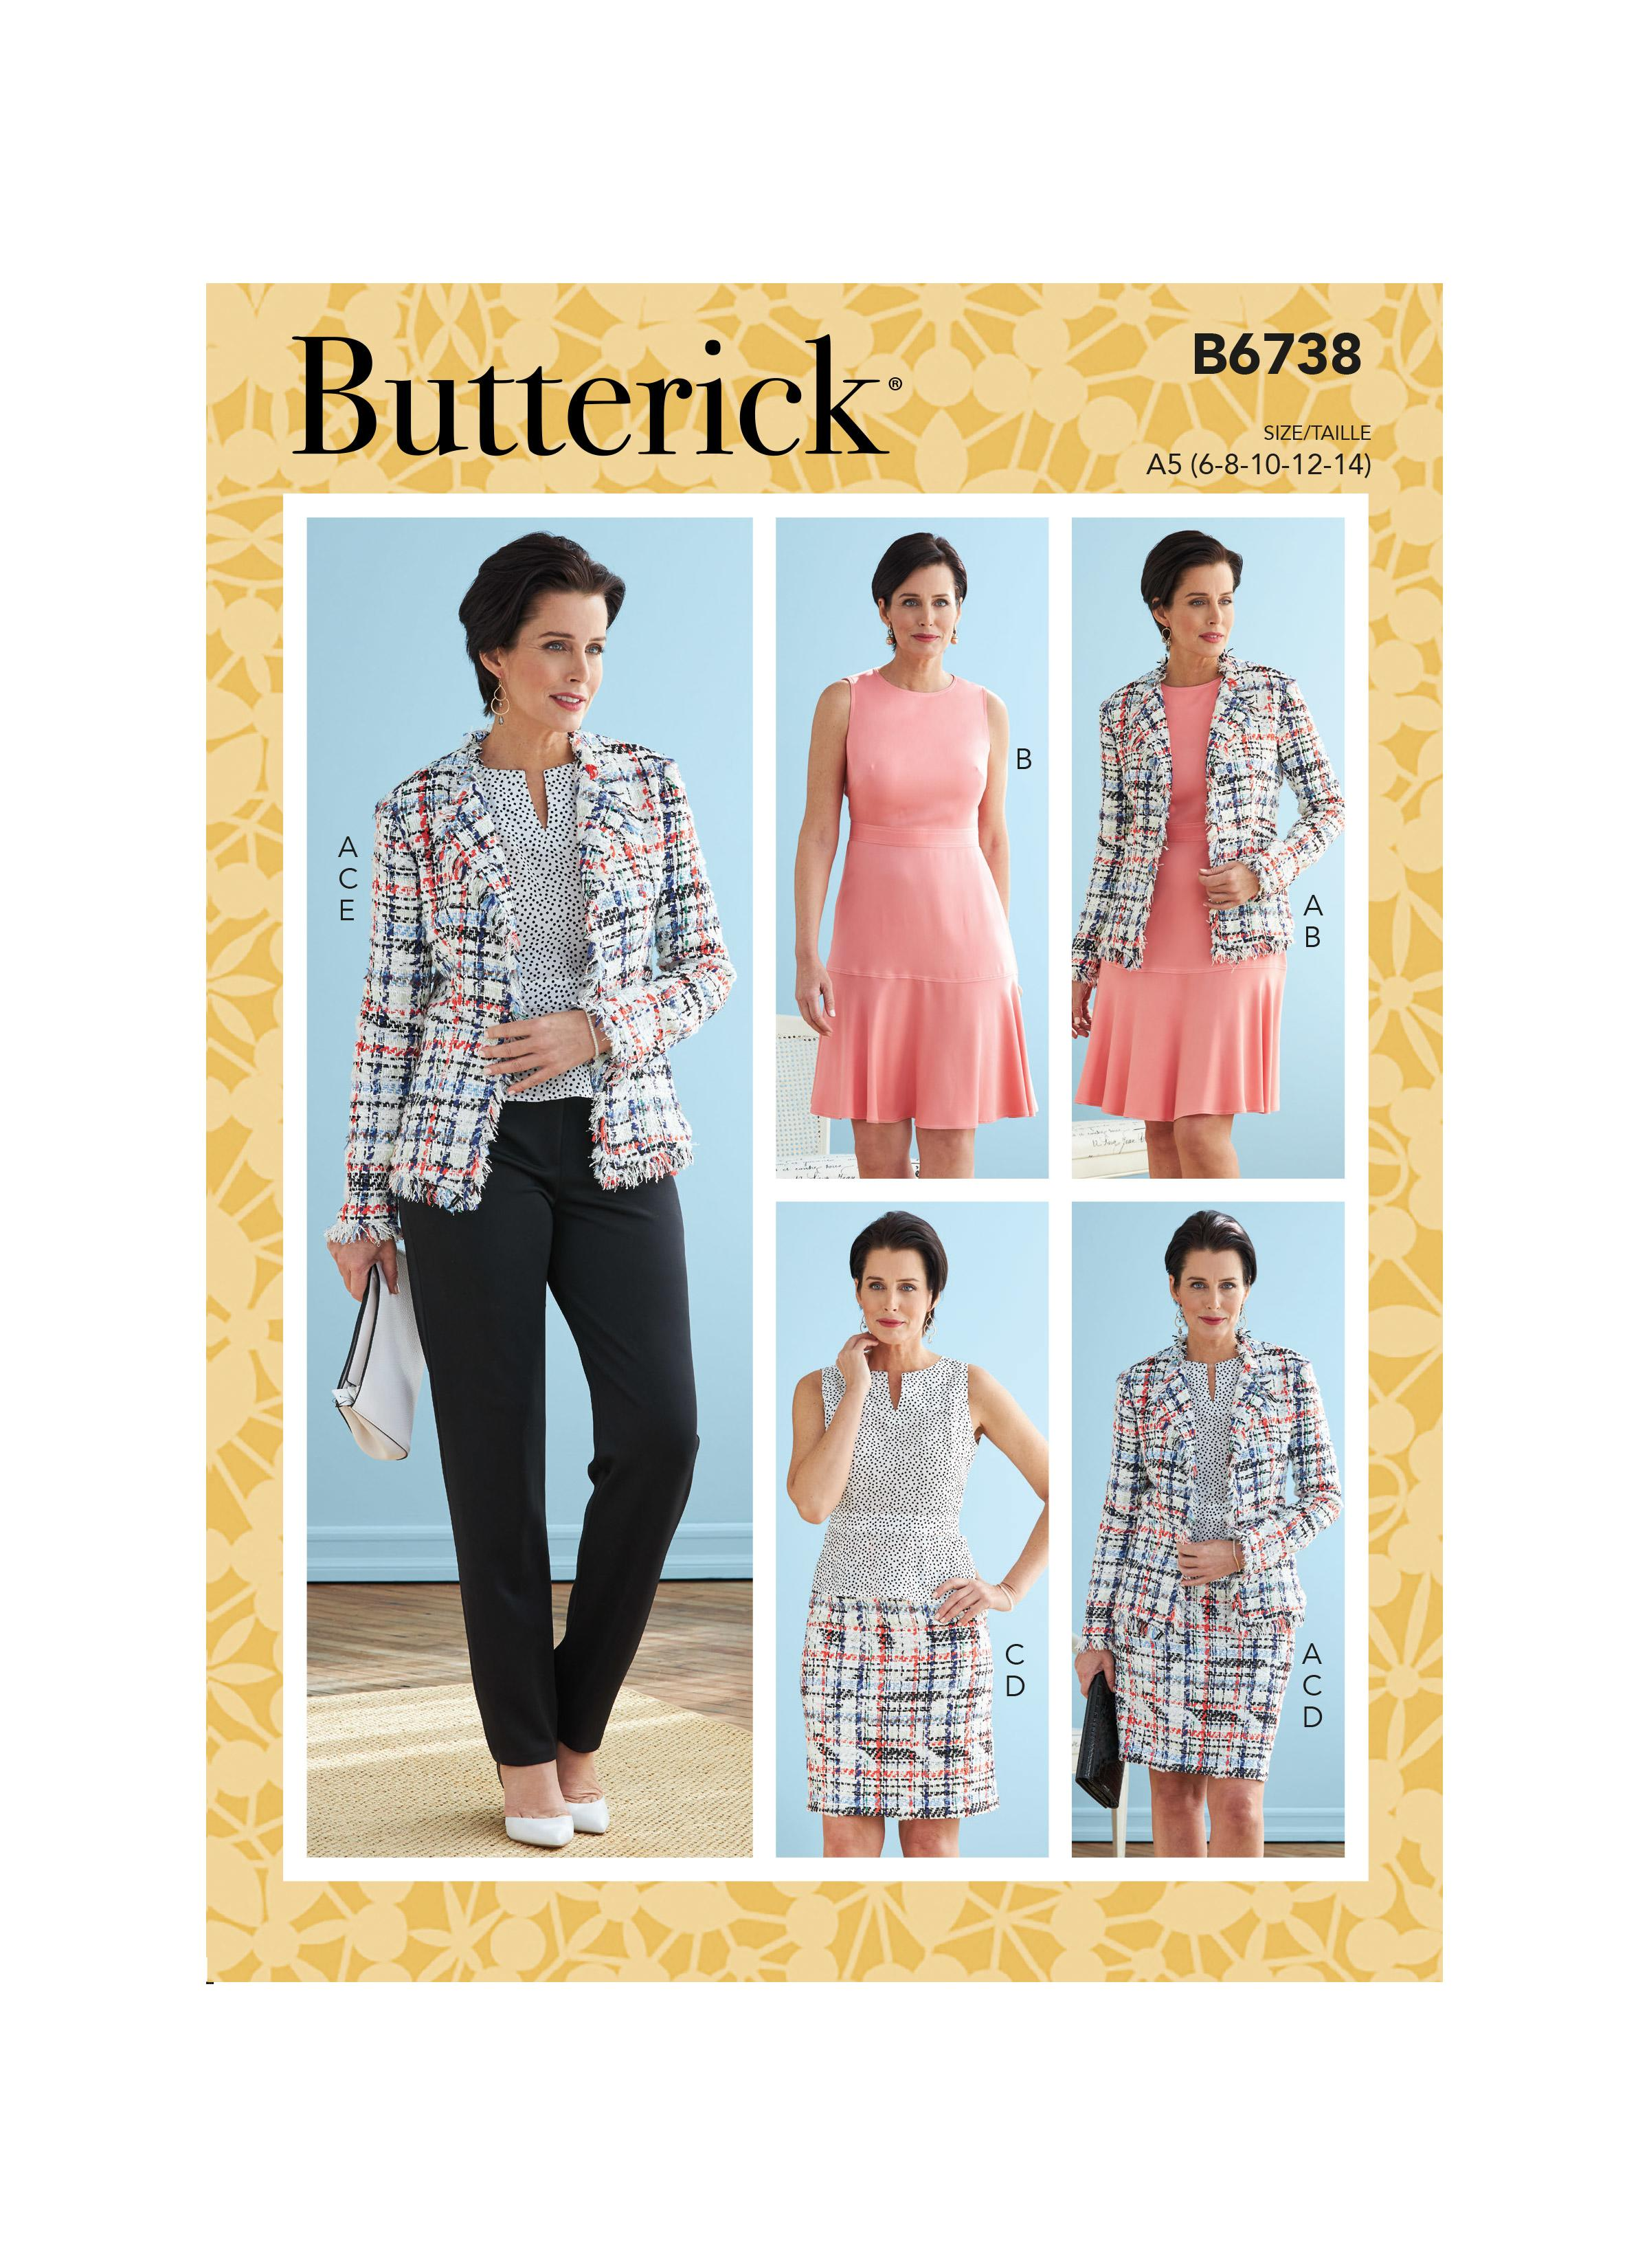 Butterick B6738 Misses' Jacket, Dress, Top, Skirt & Pants